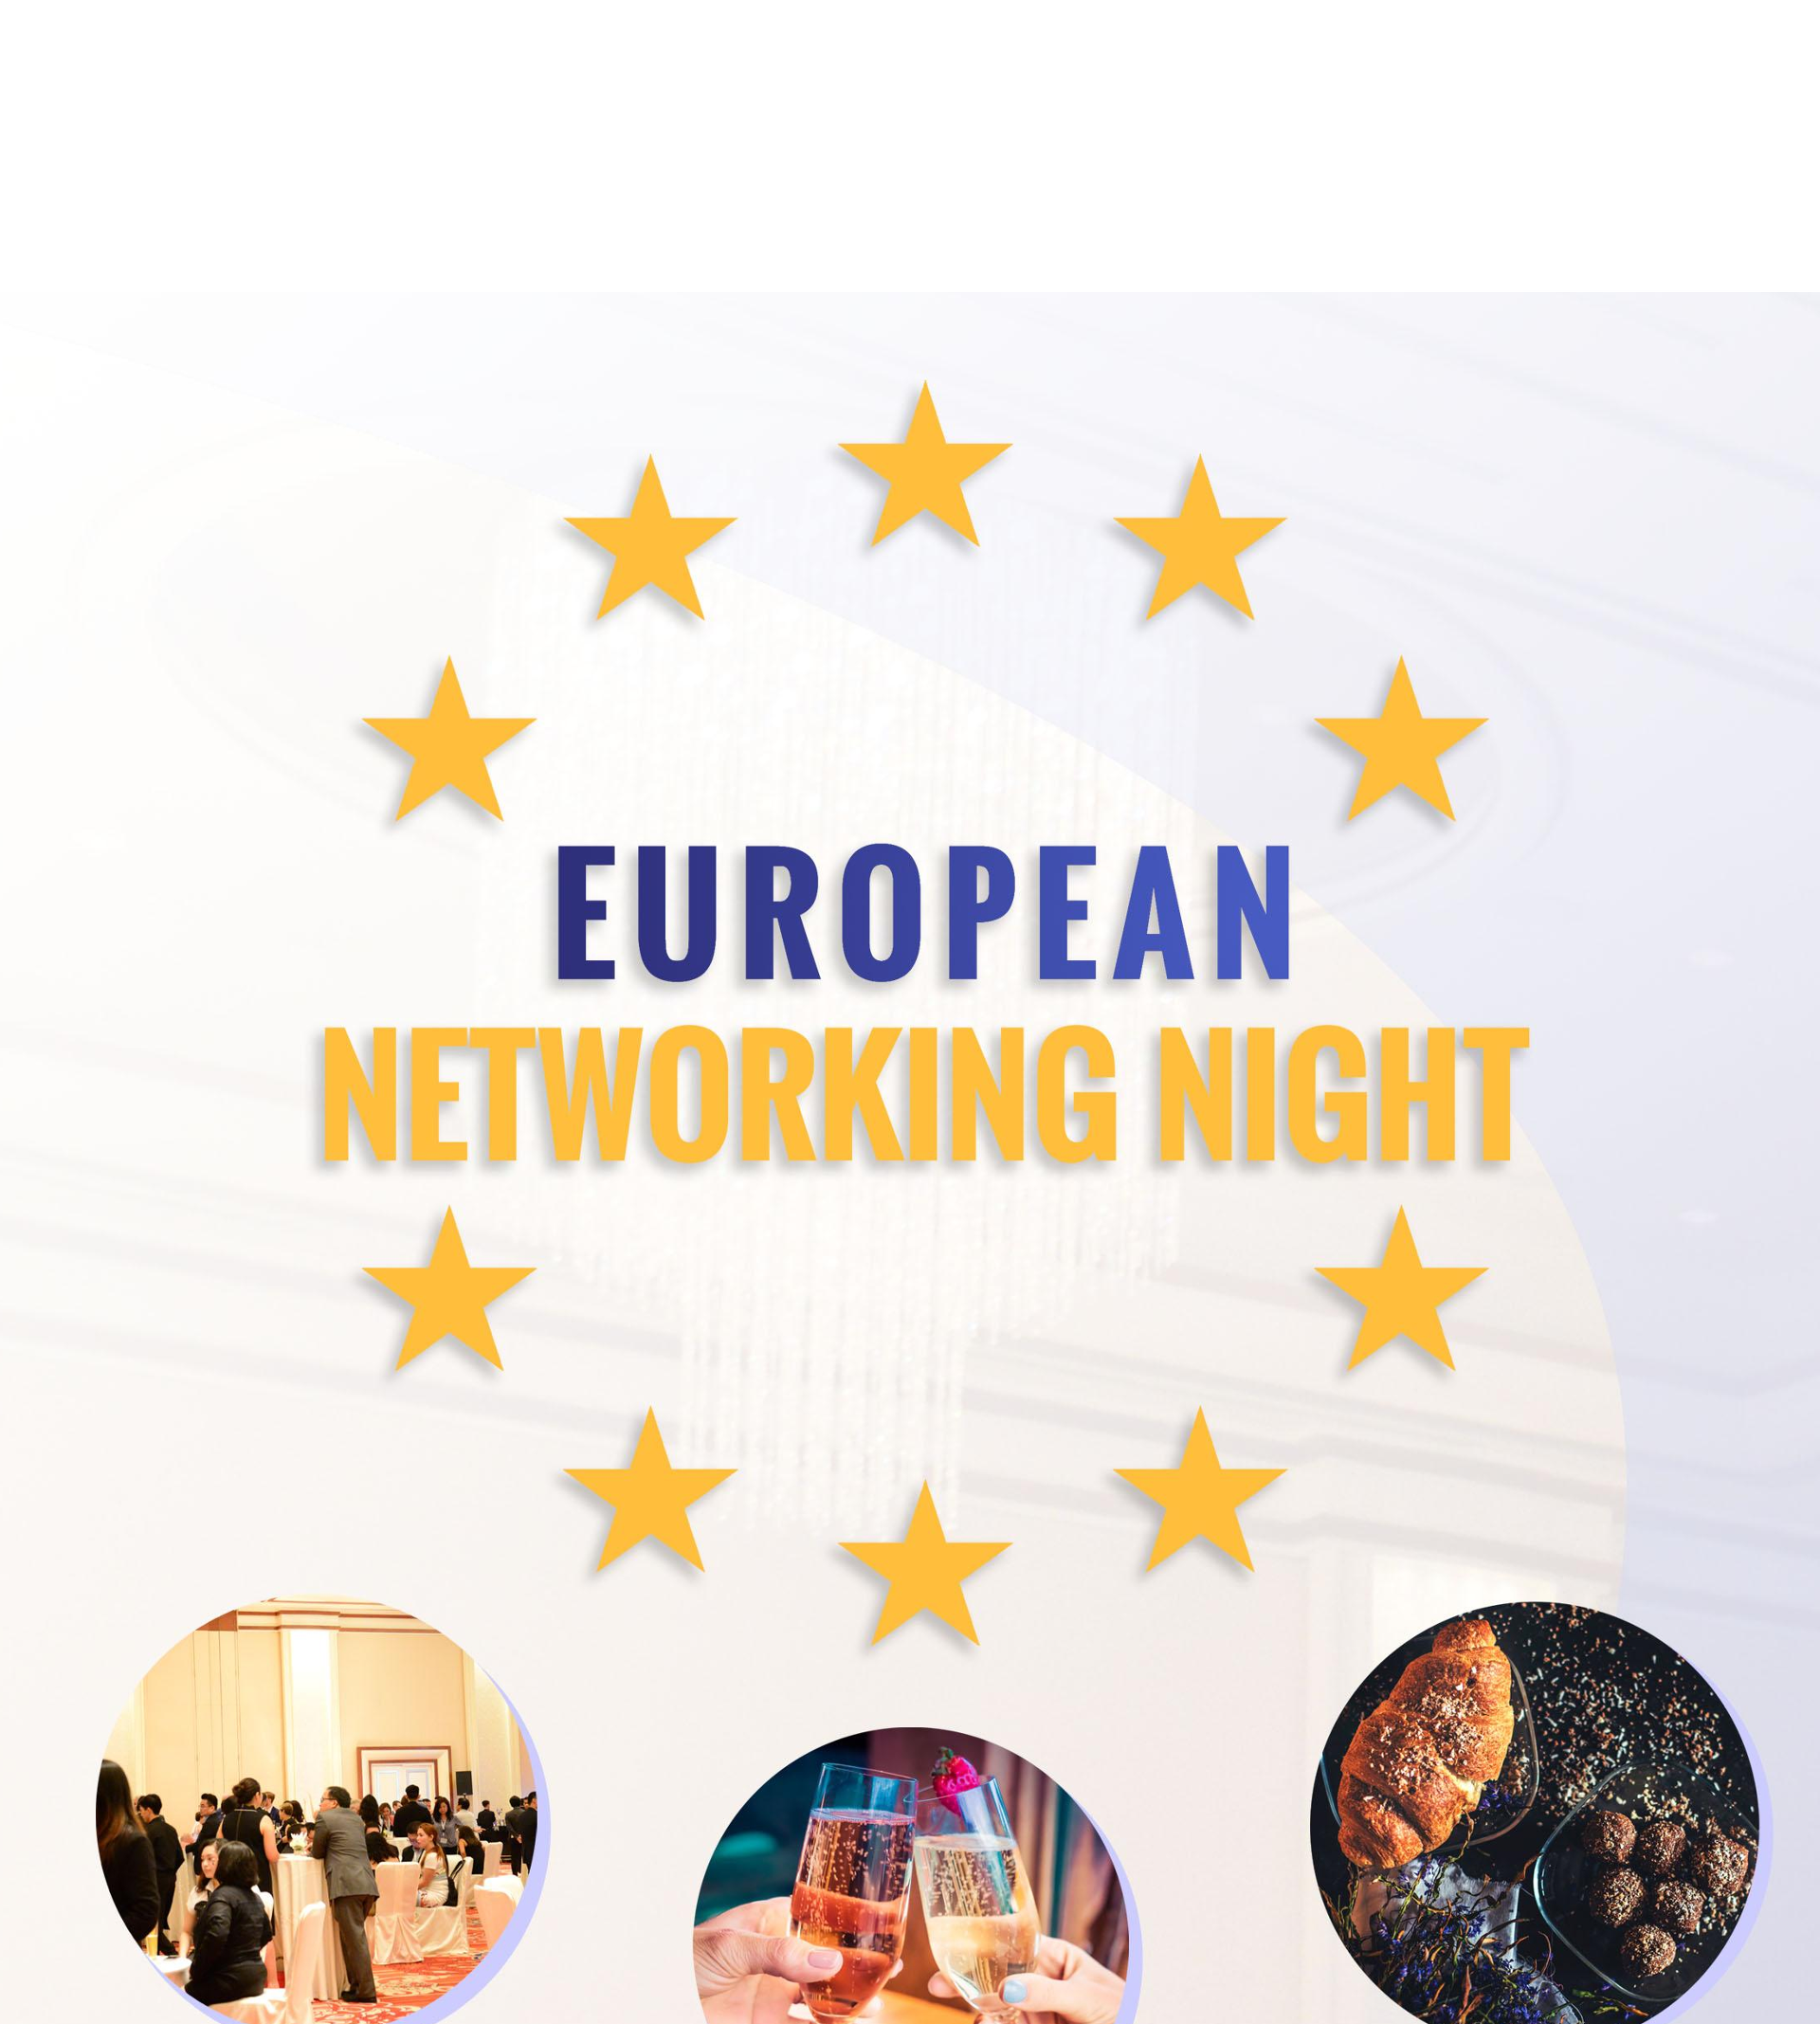 European Networking Night